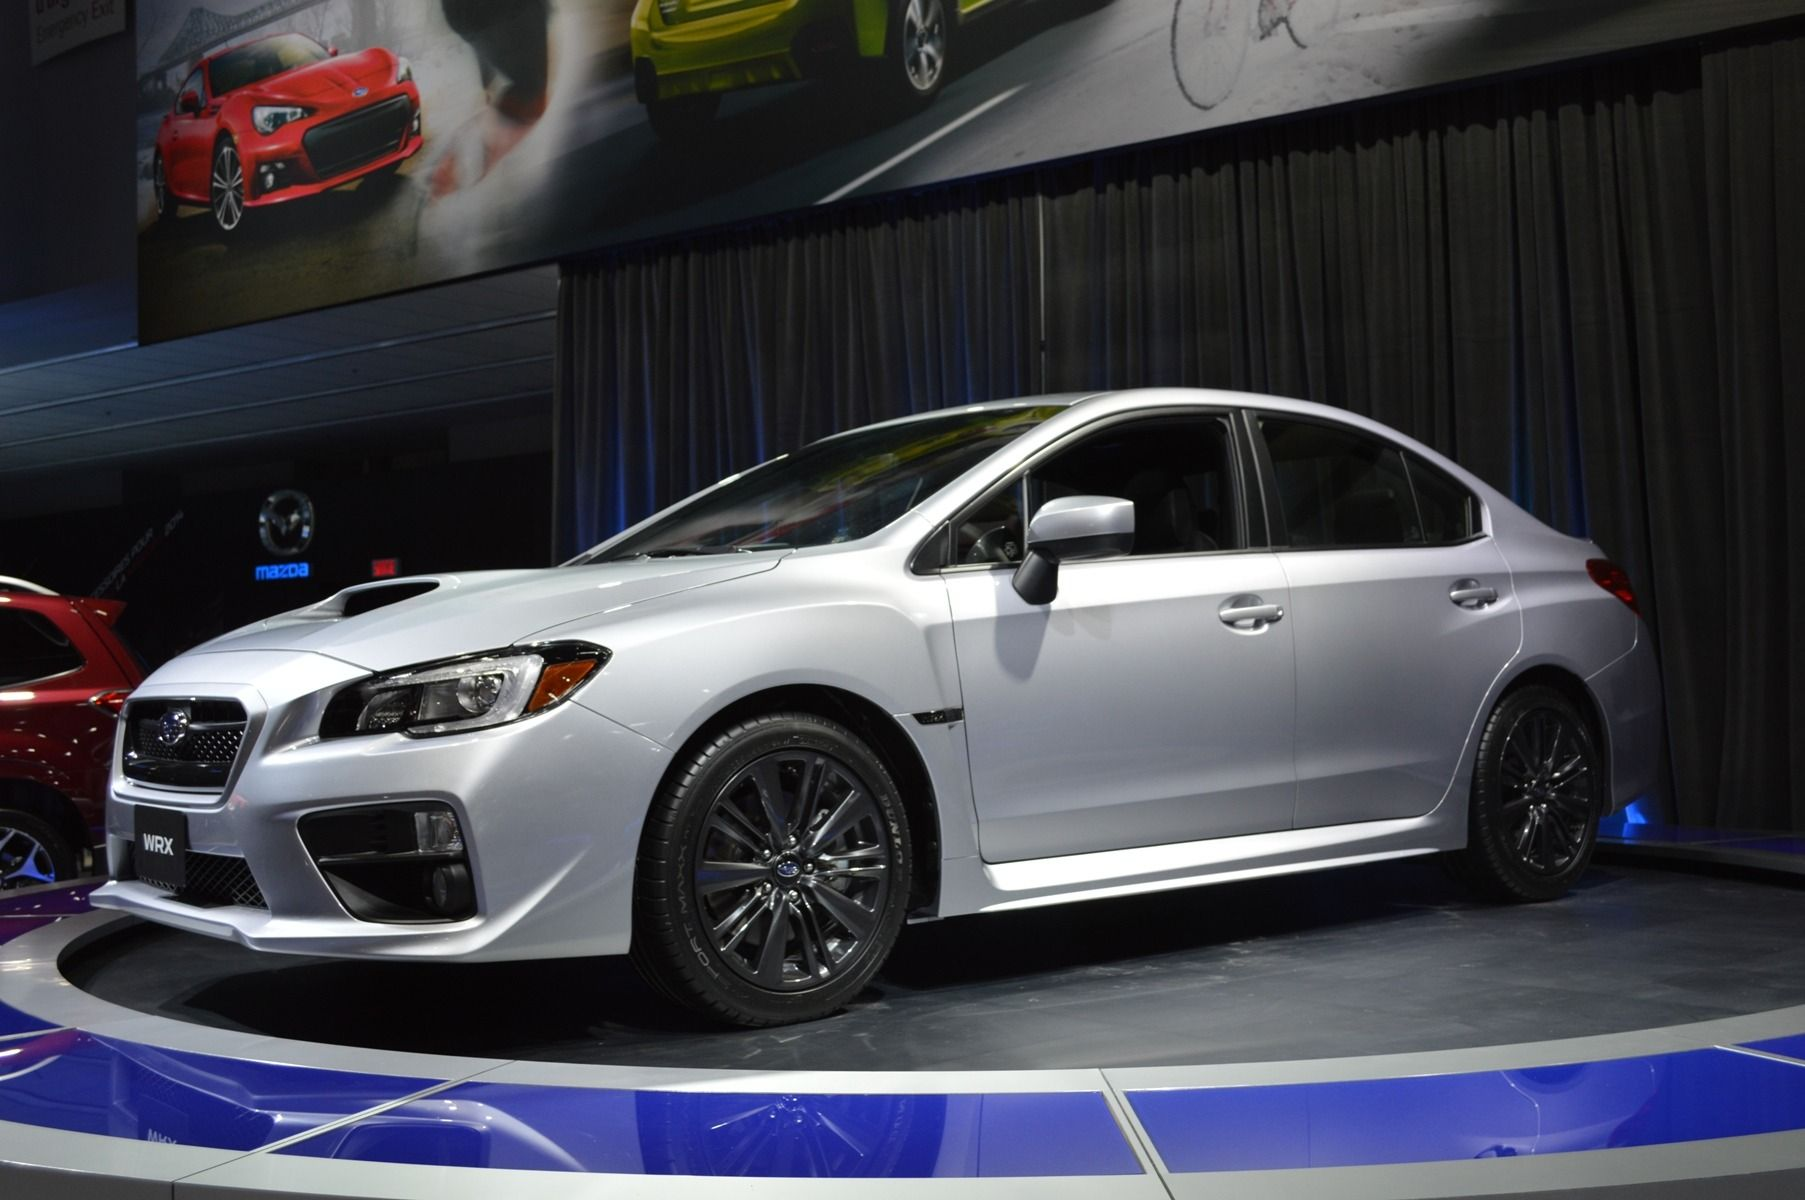 Fabulous Subaru Impreza 2016 Image Current pilation